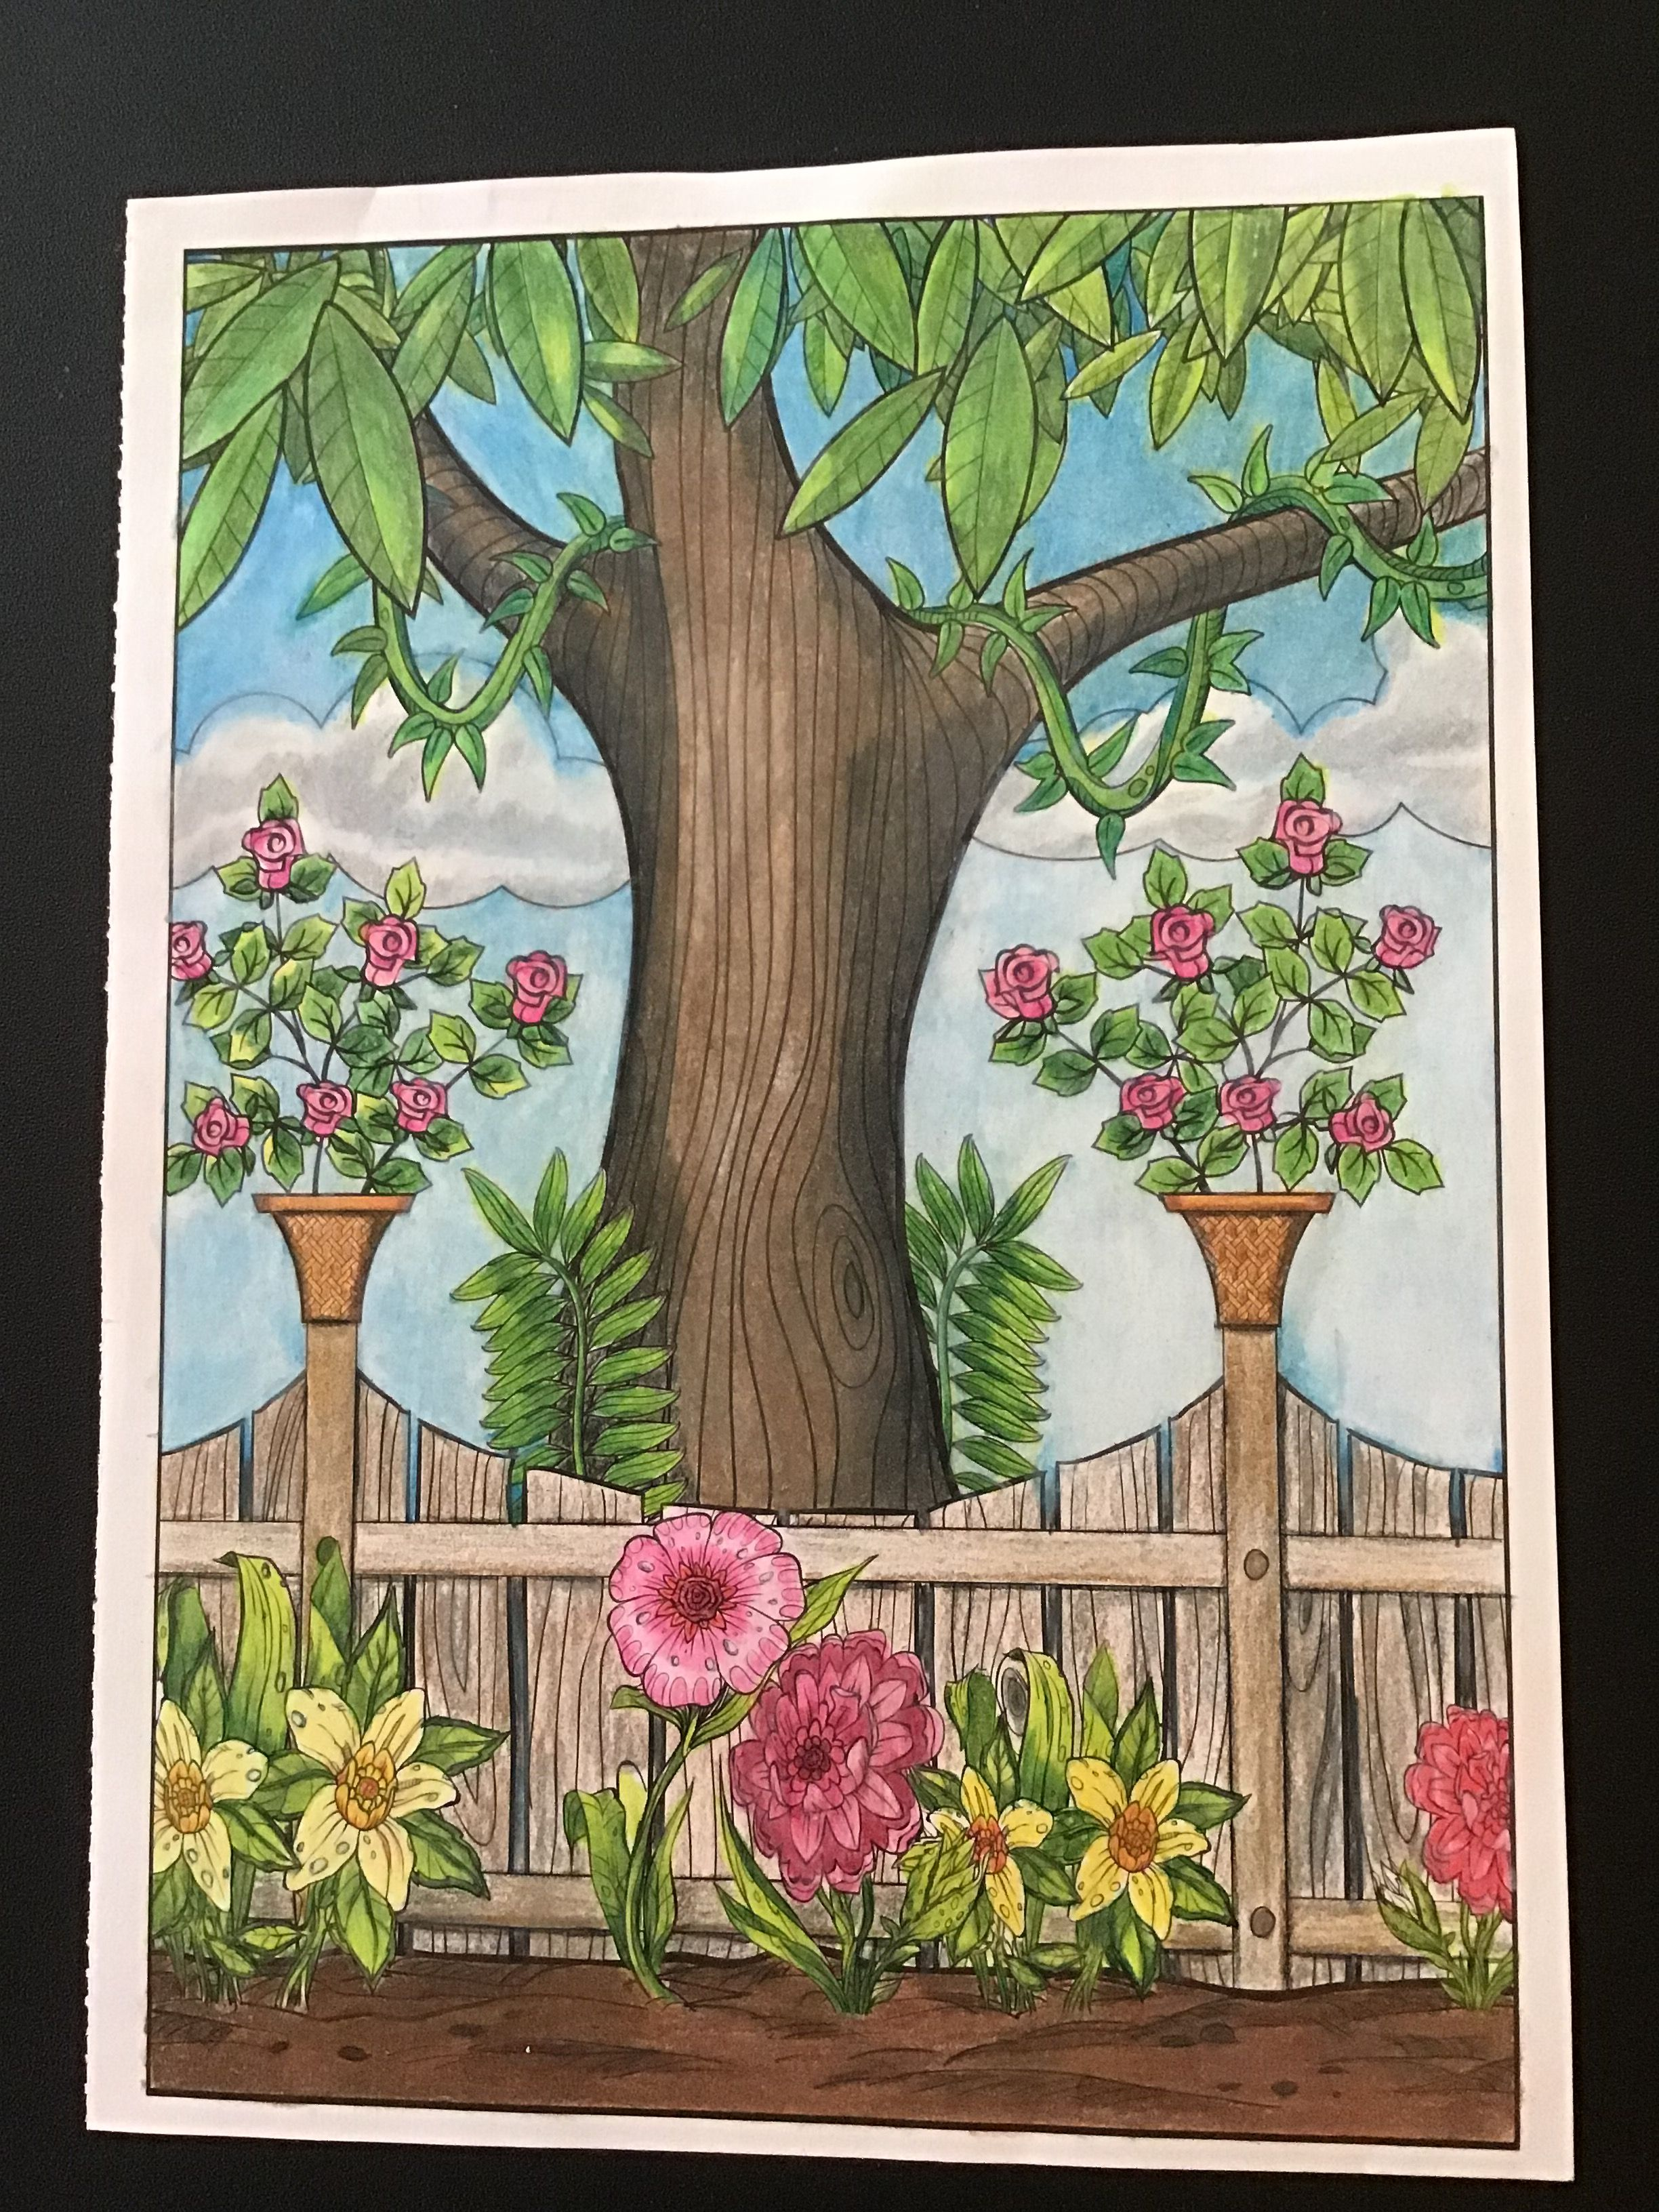 From Timeless Creations Magical Garden Coloring Book Coloring